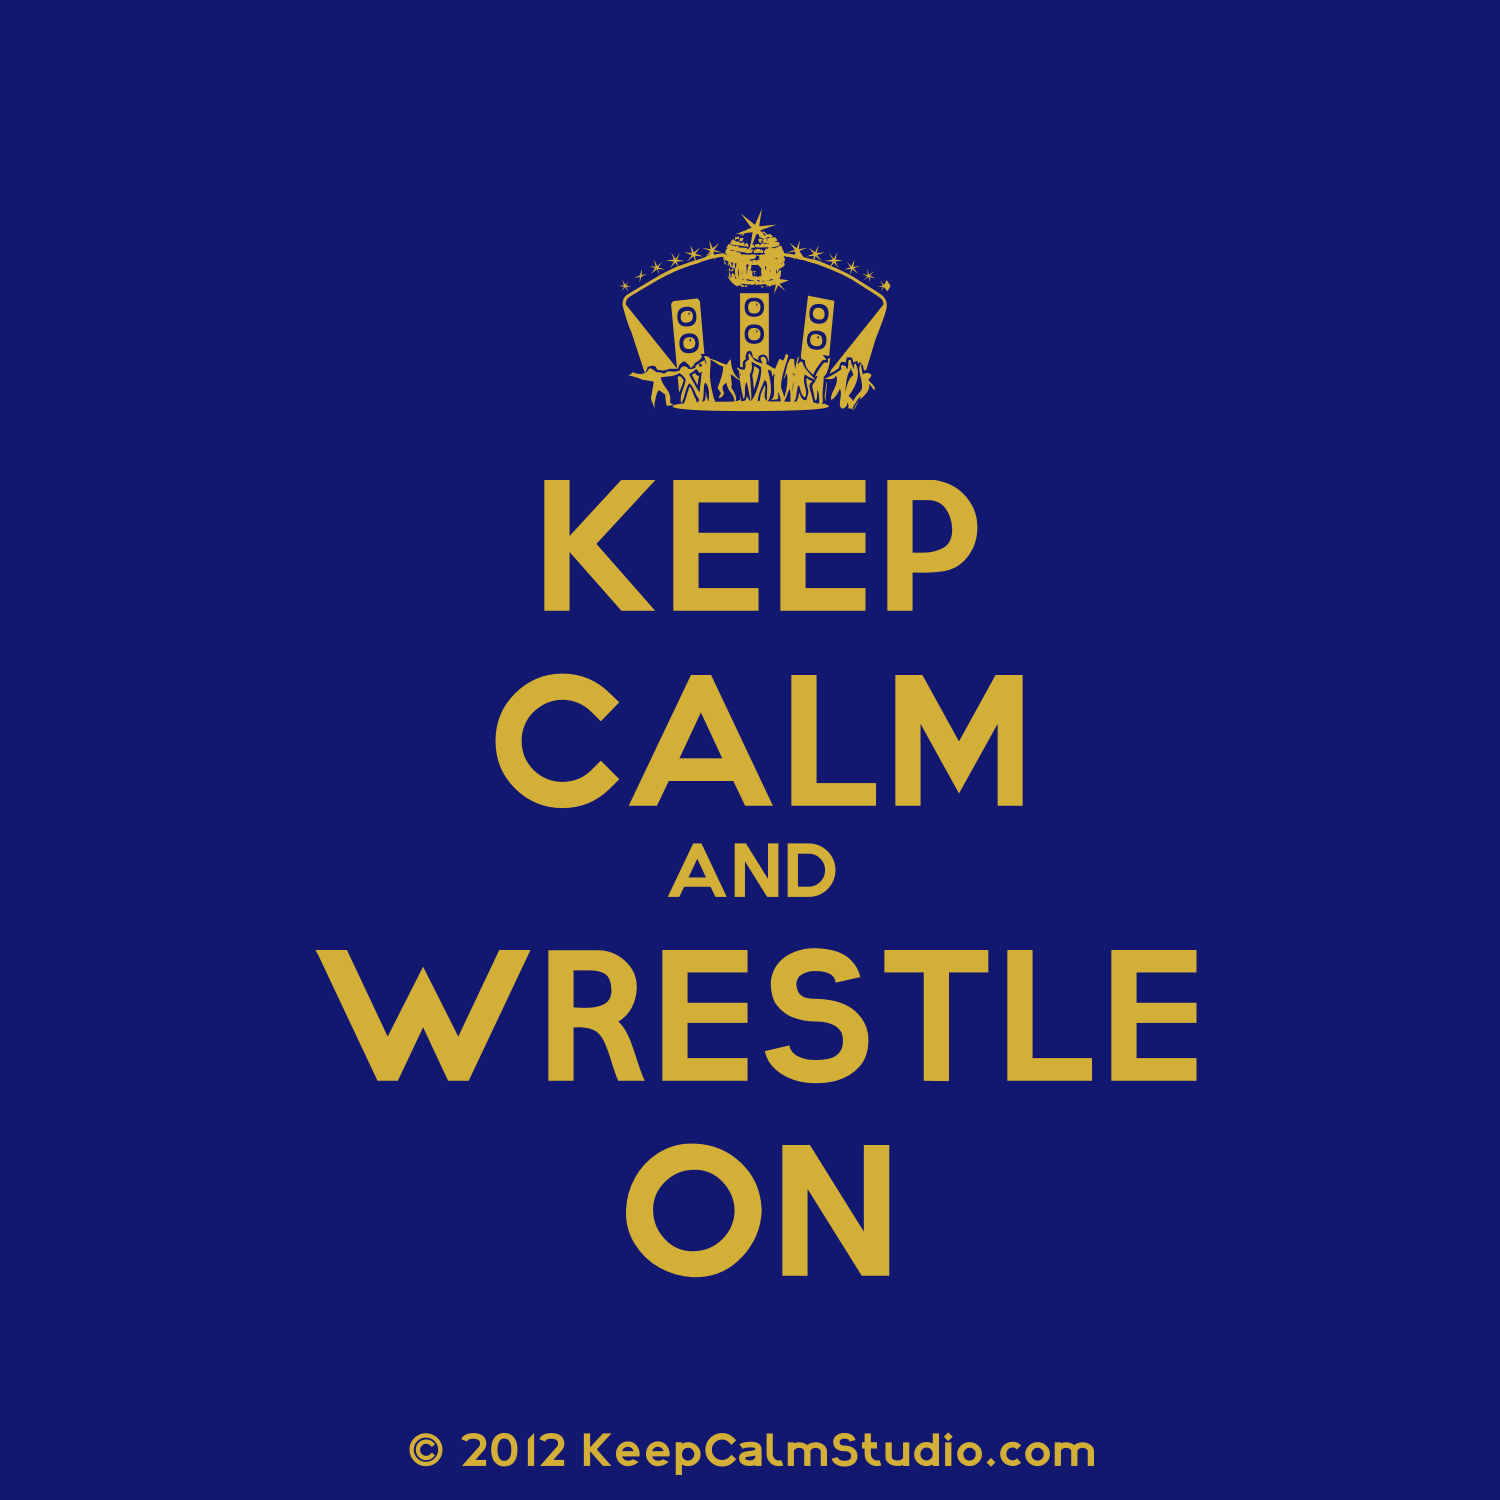 Keep-Calm-and-Wrestle-On-wallpaper-wp5406520